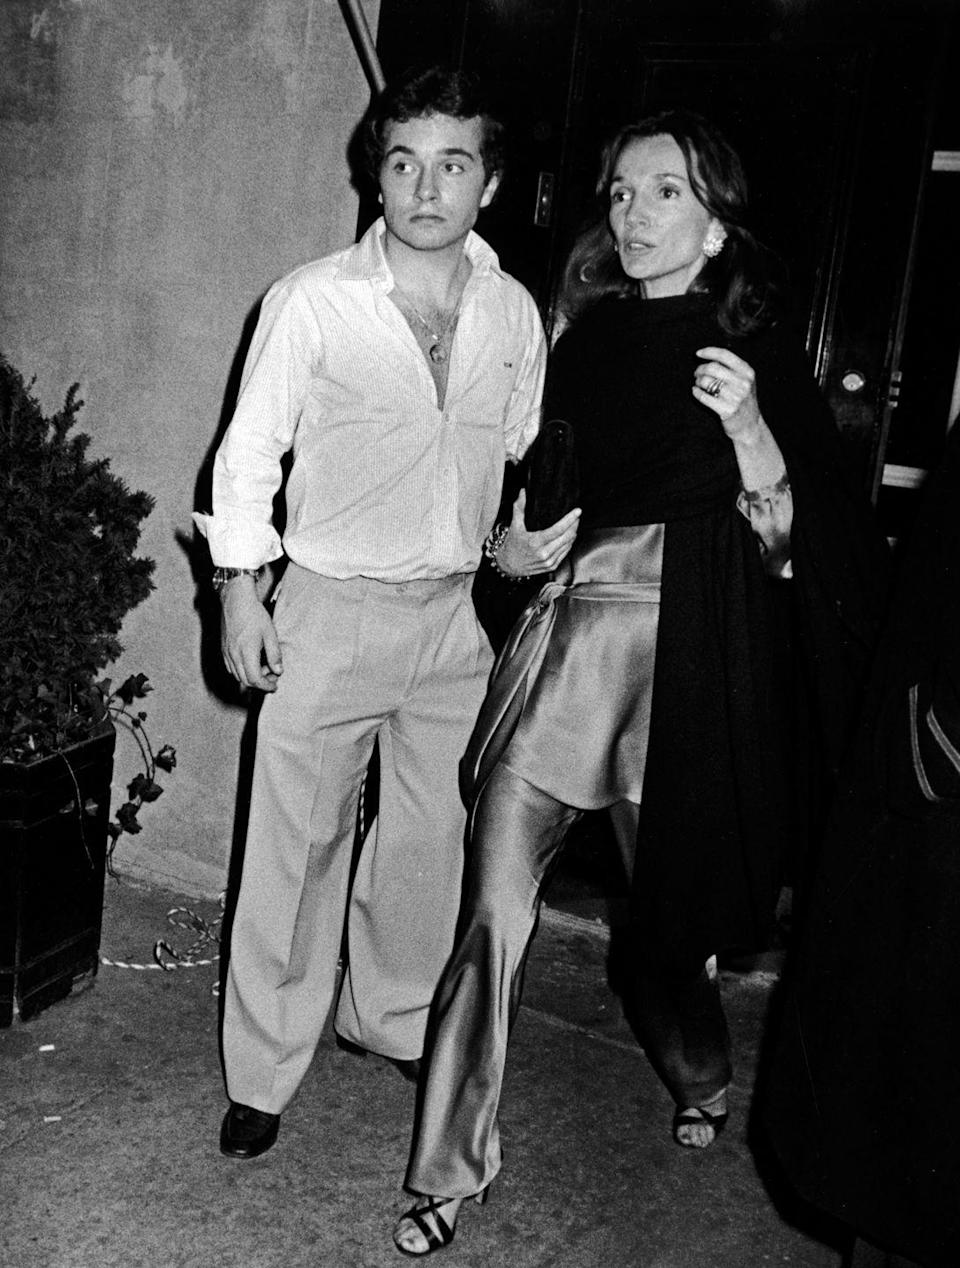 <p>Lee Radziwill and her son, Anthony, arrive at Le Club in New York City for the birthday party of John F. Kennedy Jr. and Caroline Kennedy in 1978. </p>